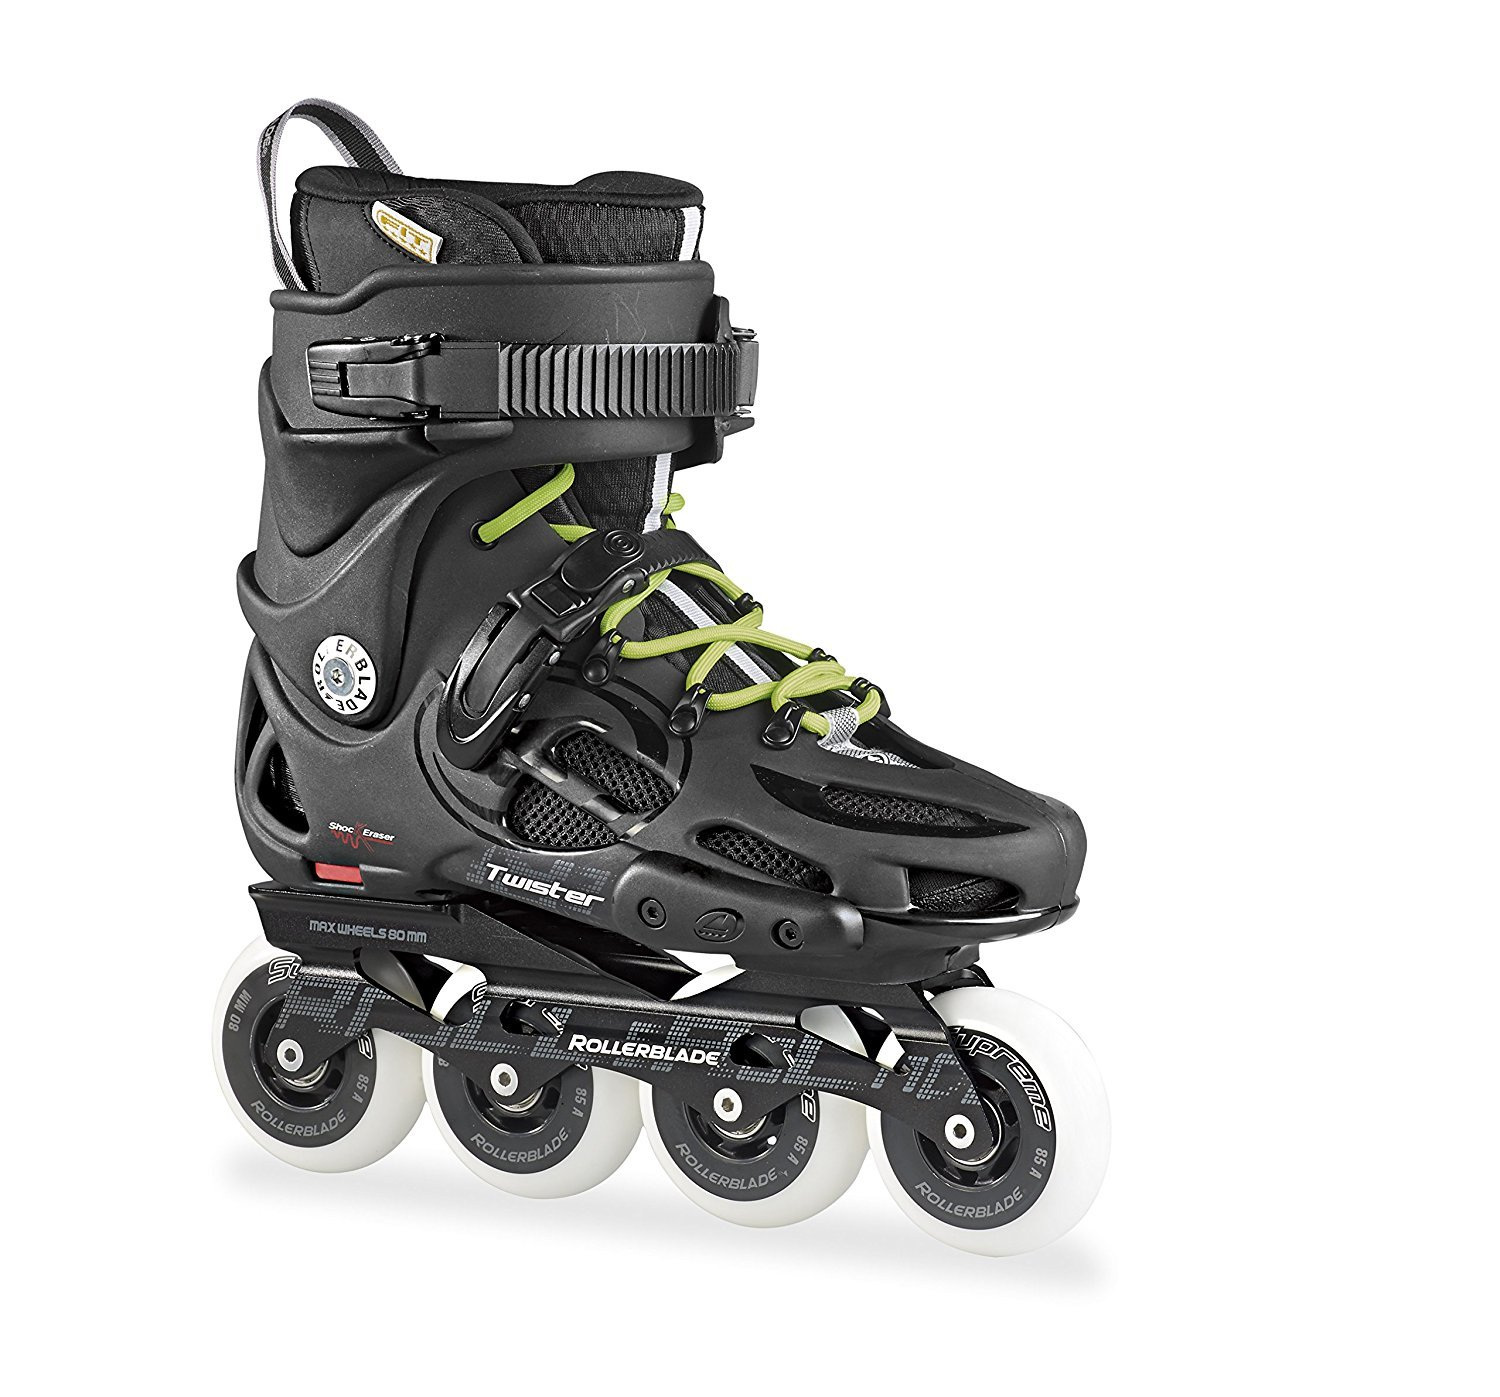 Patines freeskate Rollerblade Twister 80